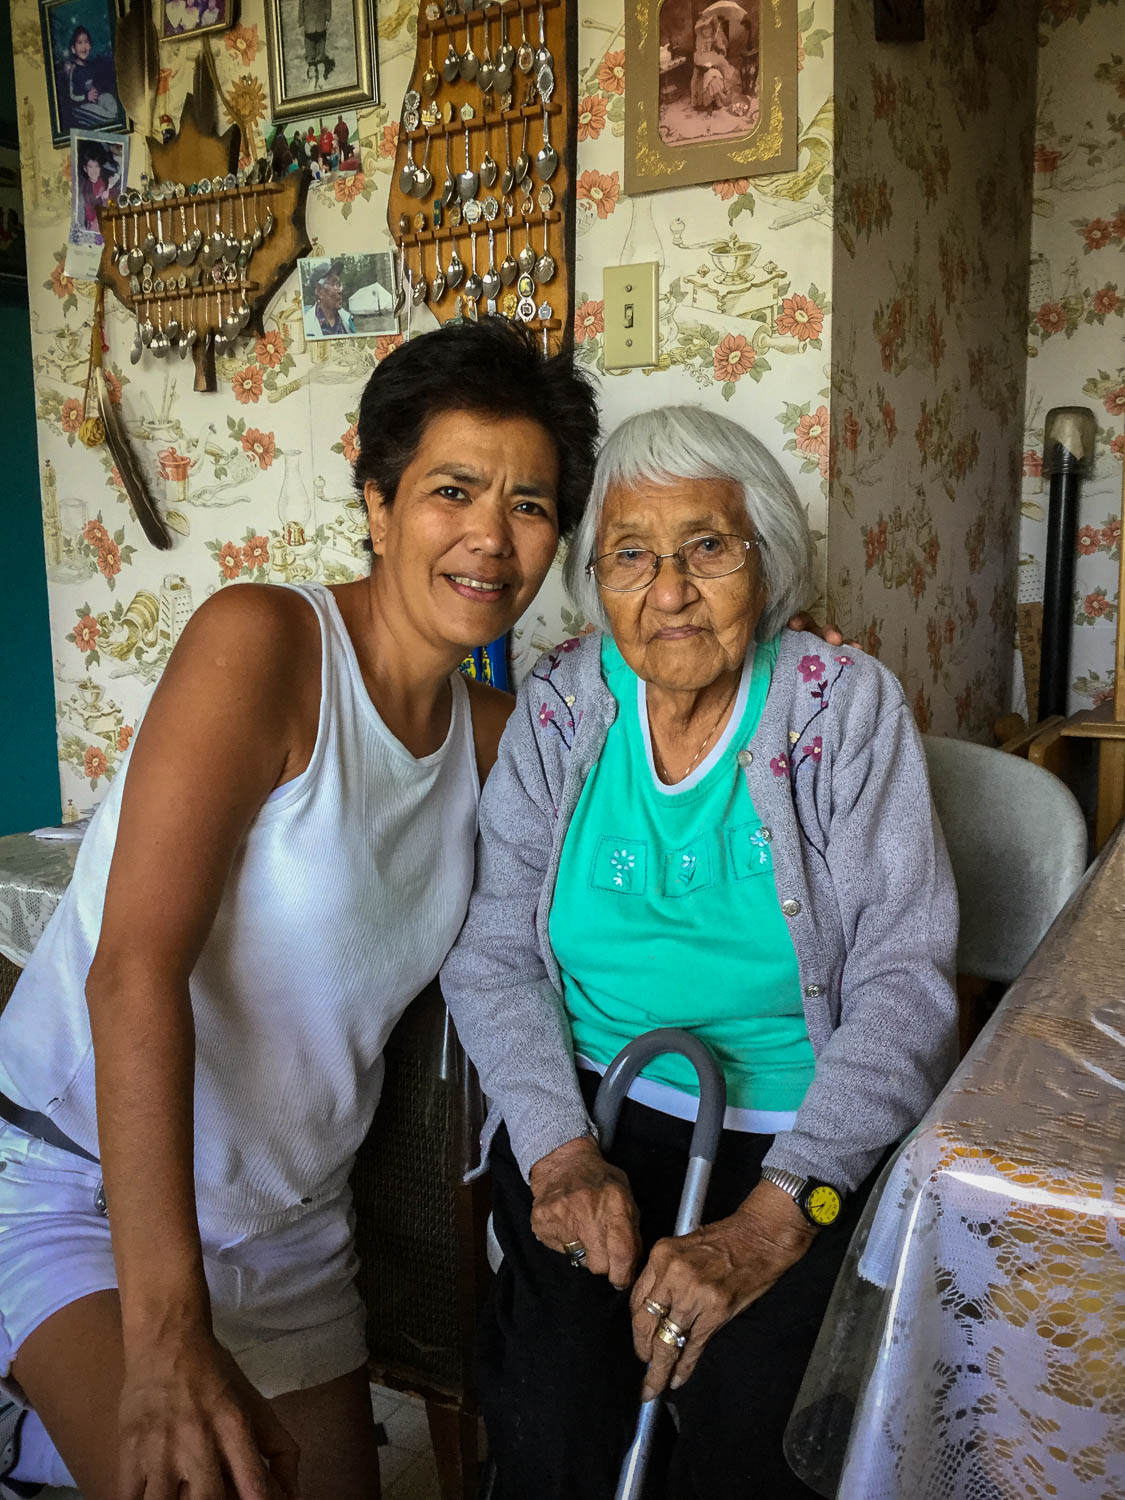 Although Karrie's mother Mary Ann died in 2014, her grandmother Winnie Atlin still lives in Carcross. After the pole raising, Karrie met with Winnie, who taught her granddaughter some words in Tlingit.